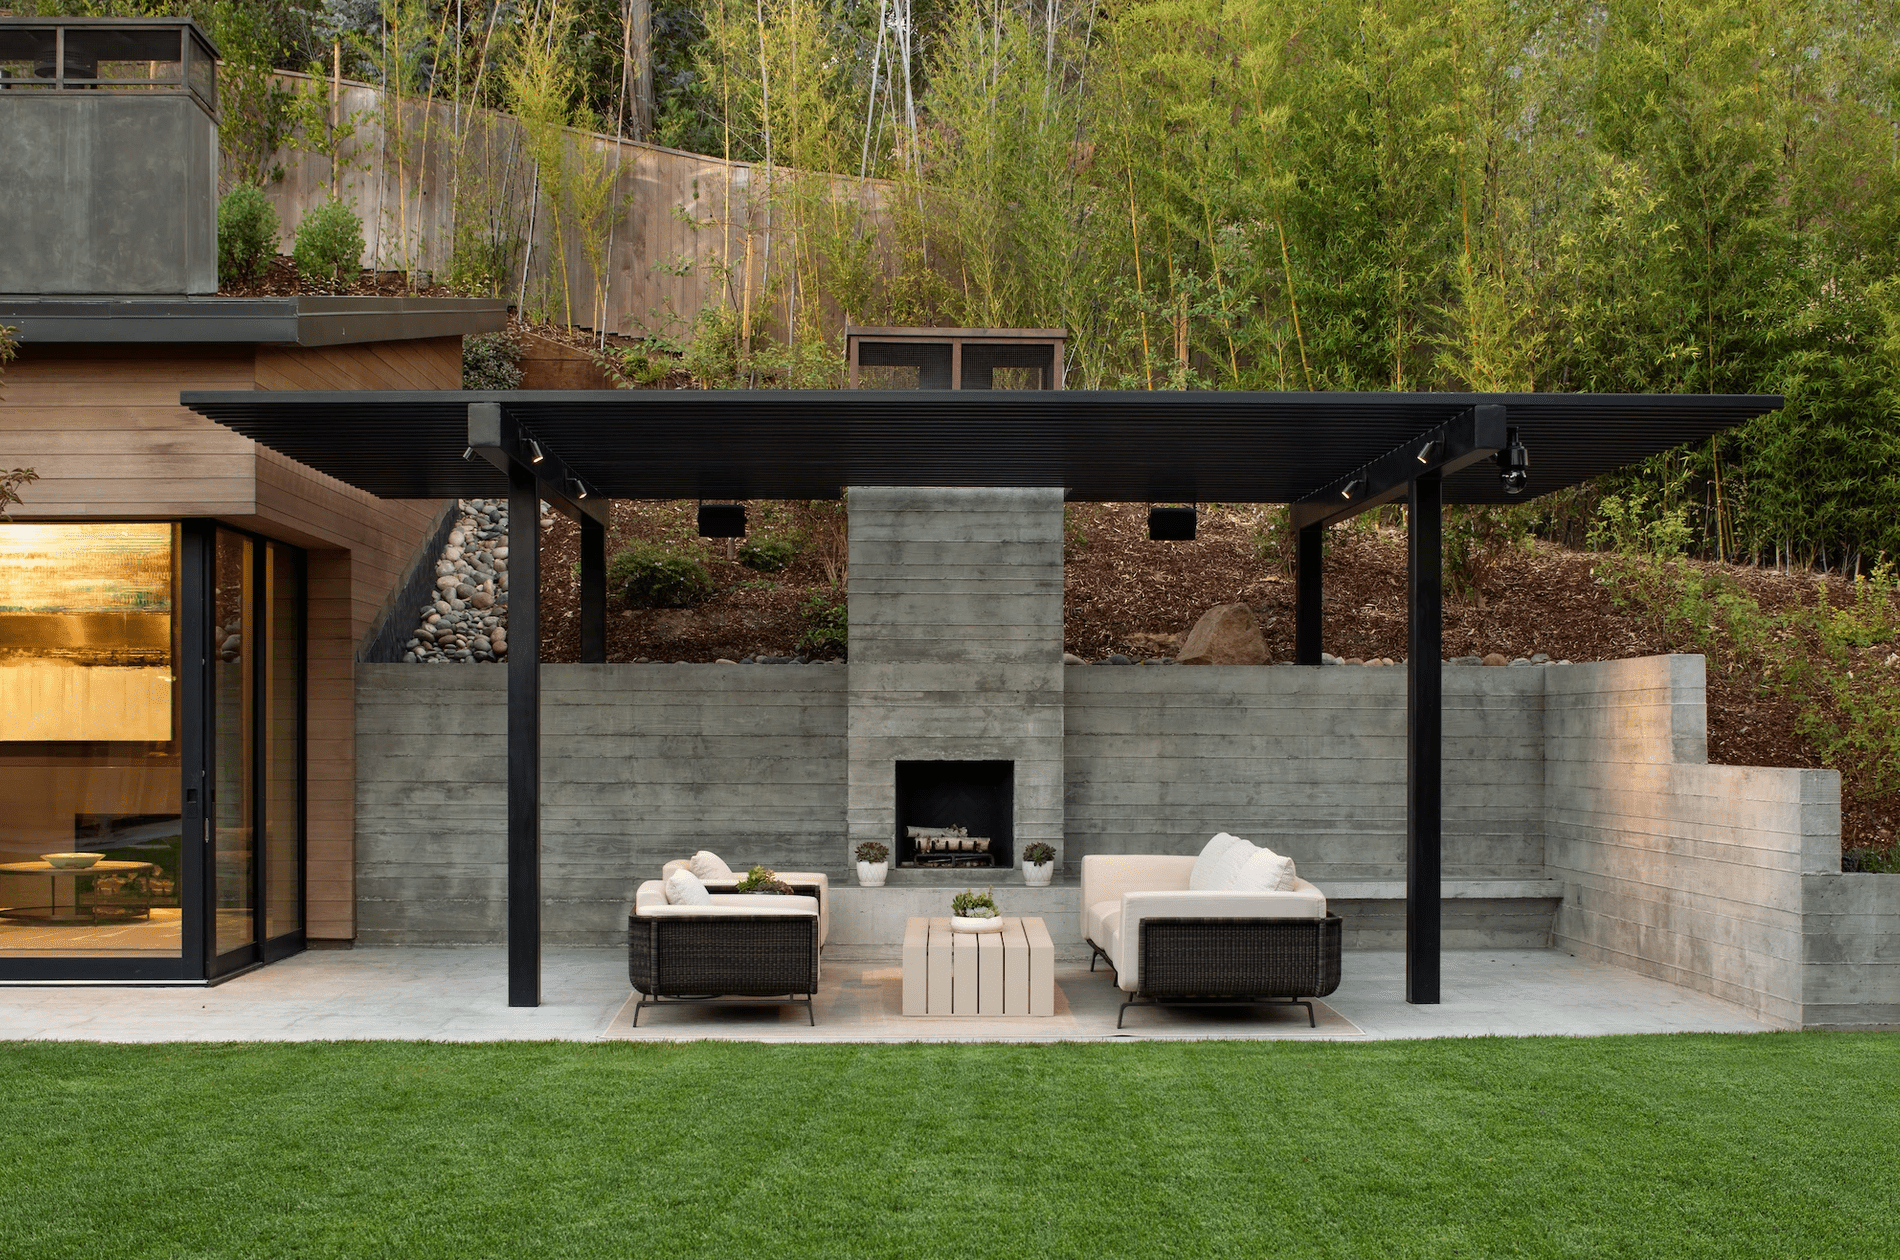 A contemporary outdoor fireplace, paired with a sleek black pergola